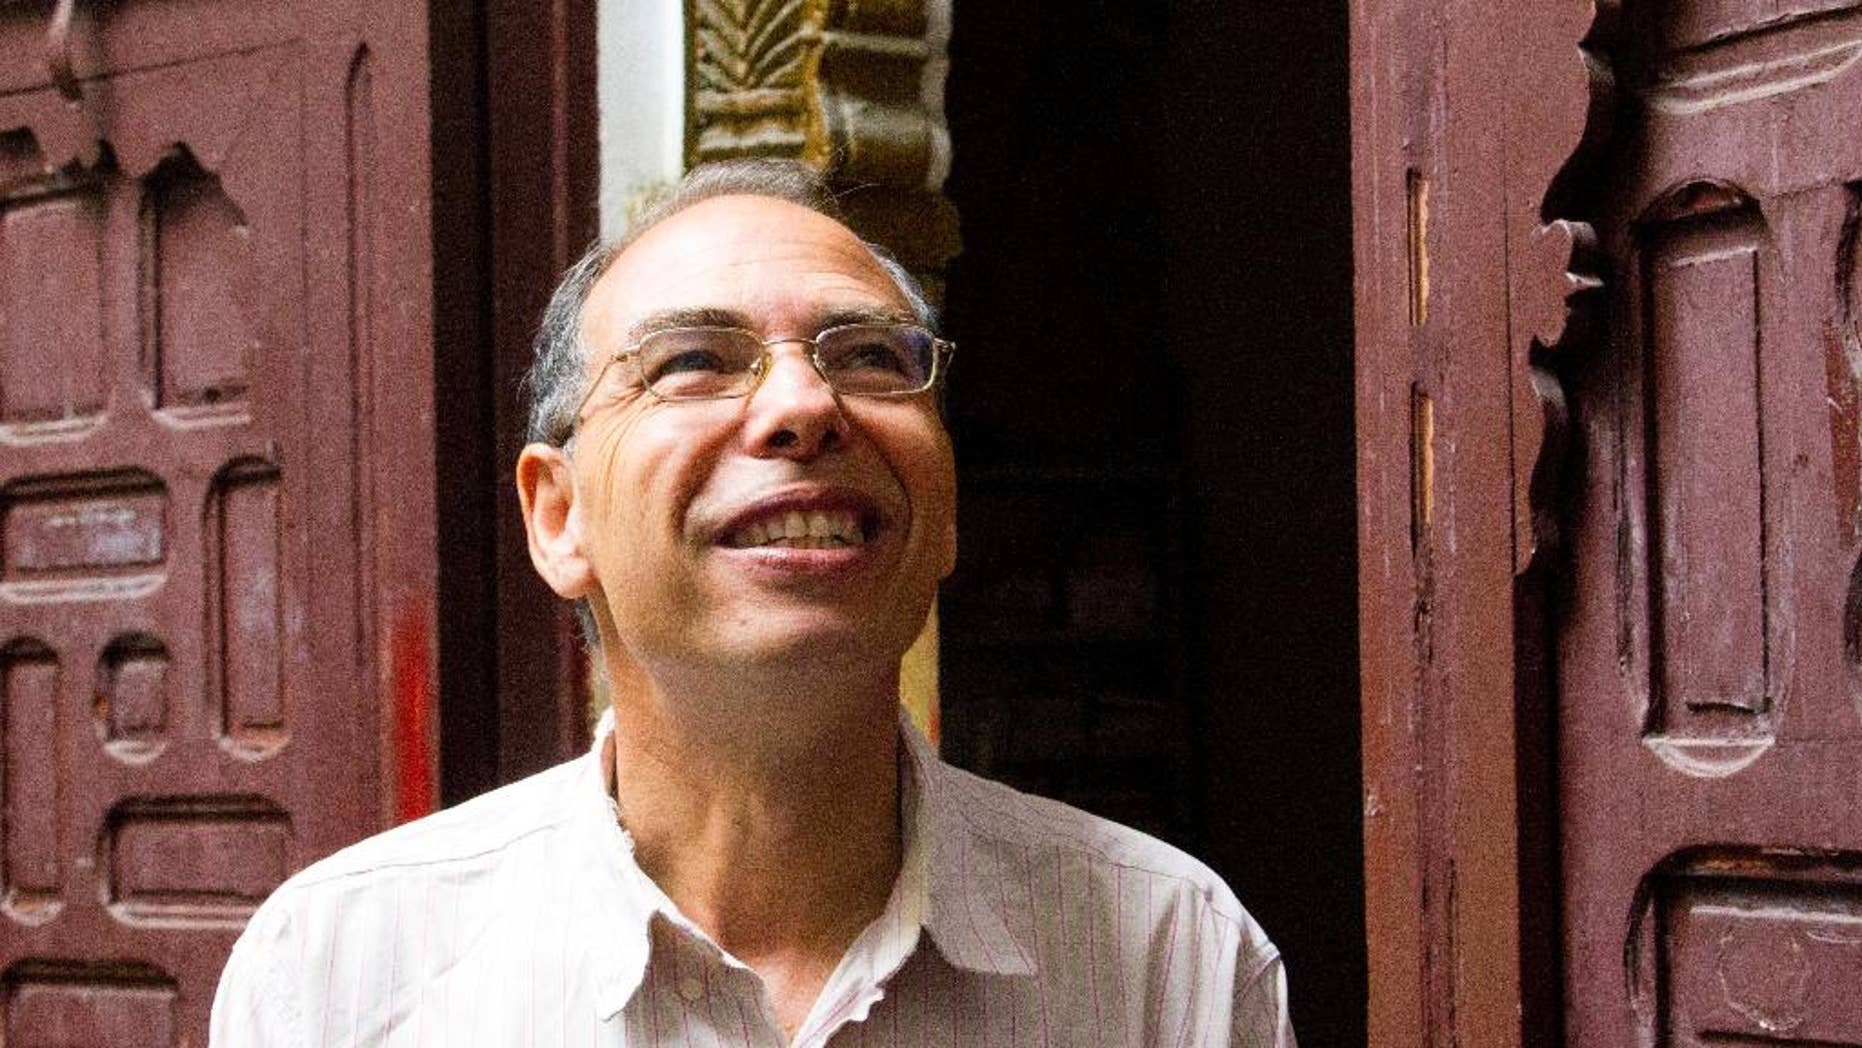 Moroccan historian and journalist Maati Monjib stands outside the local headquarters of a human rights group in Rabat, Morocco, Thursday Sept. 17, 2015. Monjib said Thursday he has gone on hunger strike after being banned from leaving the country because he is under investigation for harming the country's image. (AP Photo/Paul Schemm)